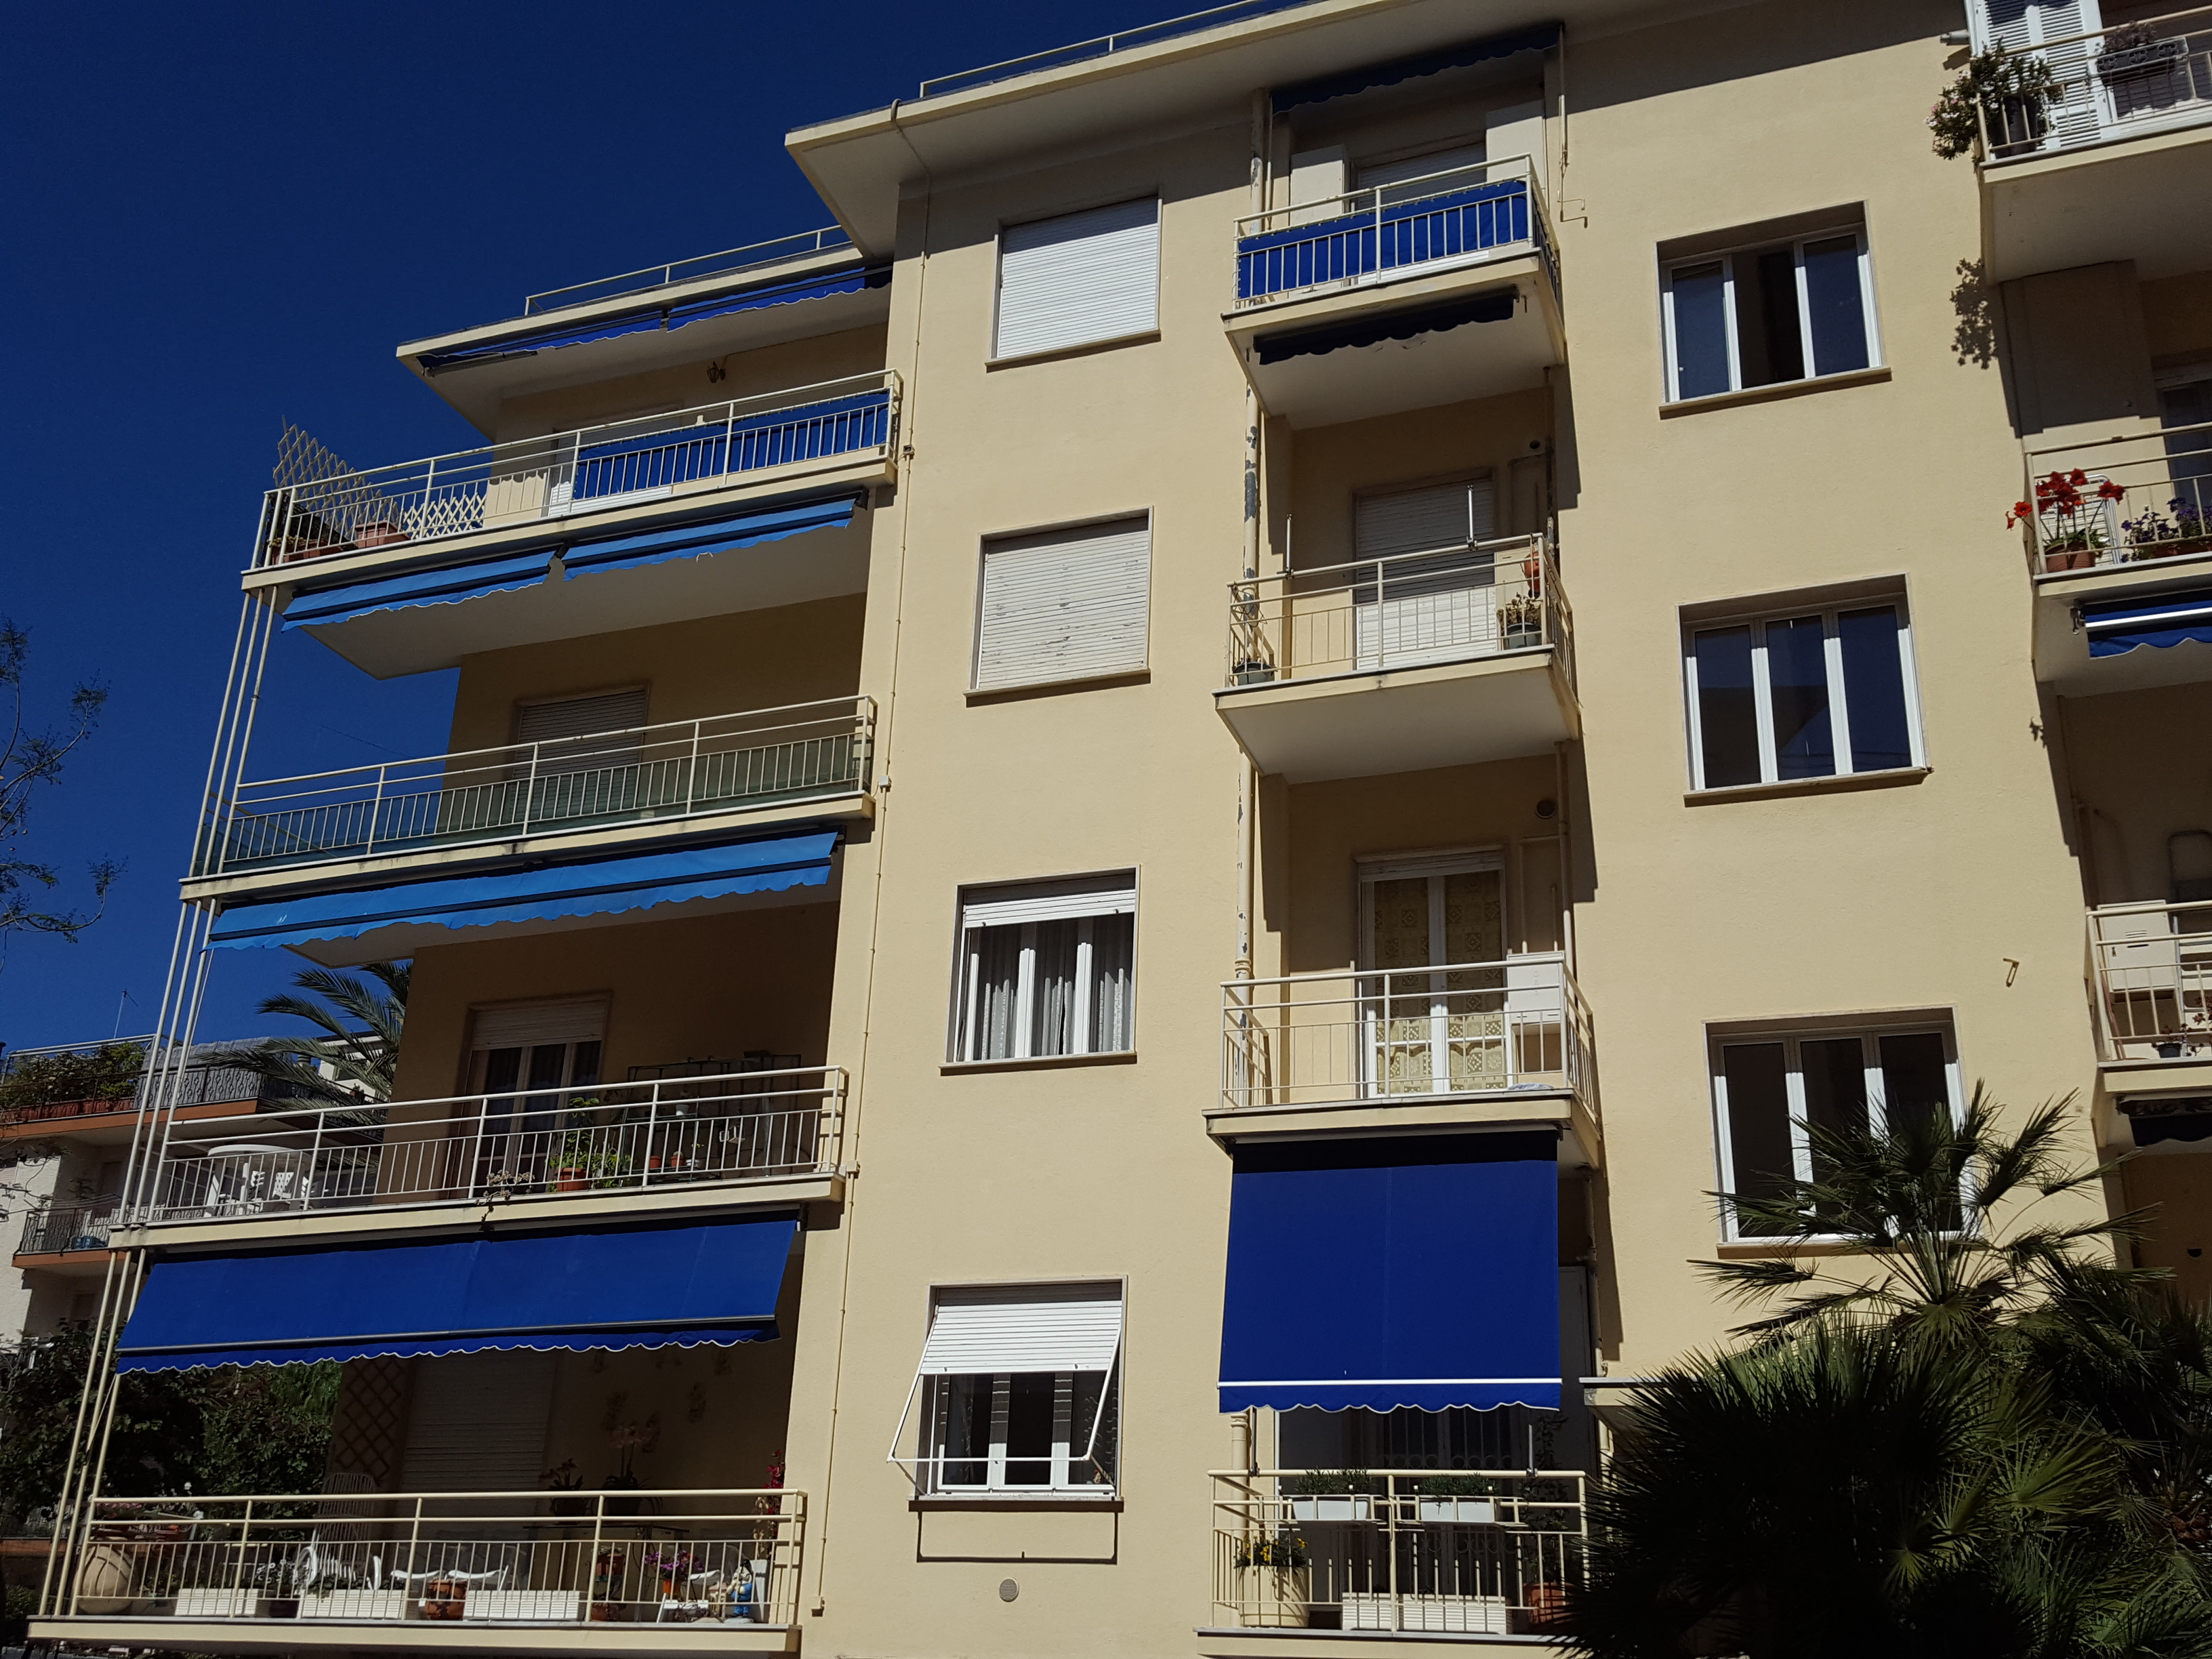 Spacious two bedroom apartment in the center of Bordighera with garage and cellar